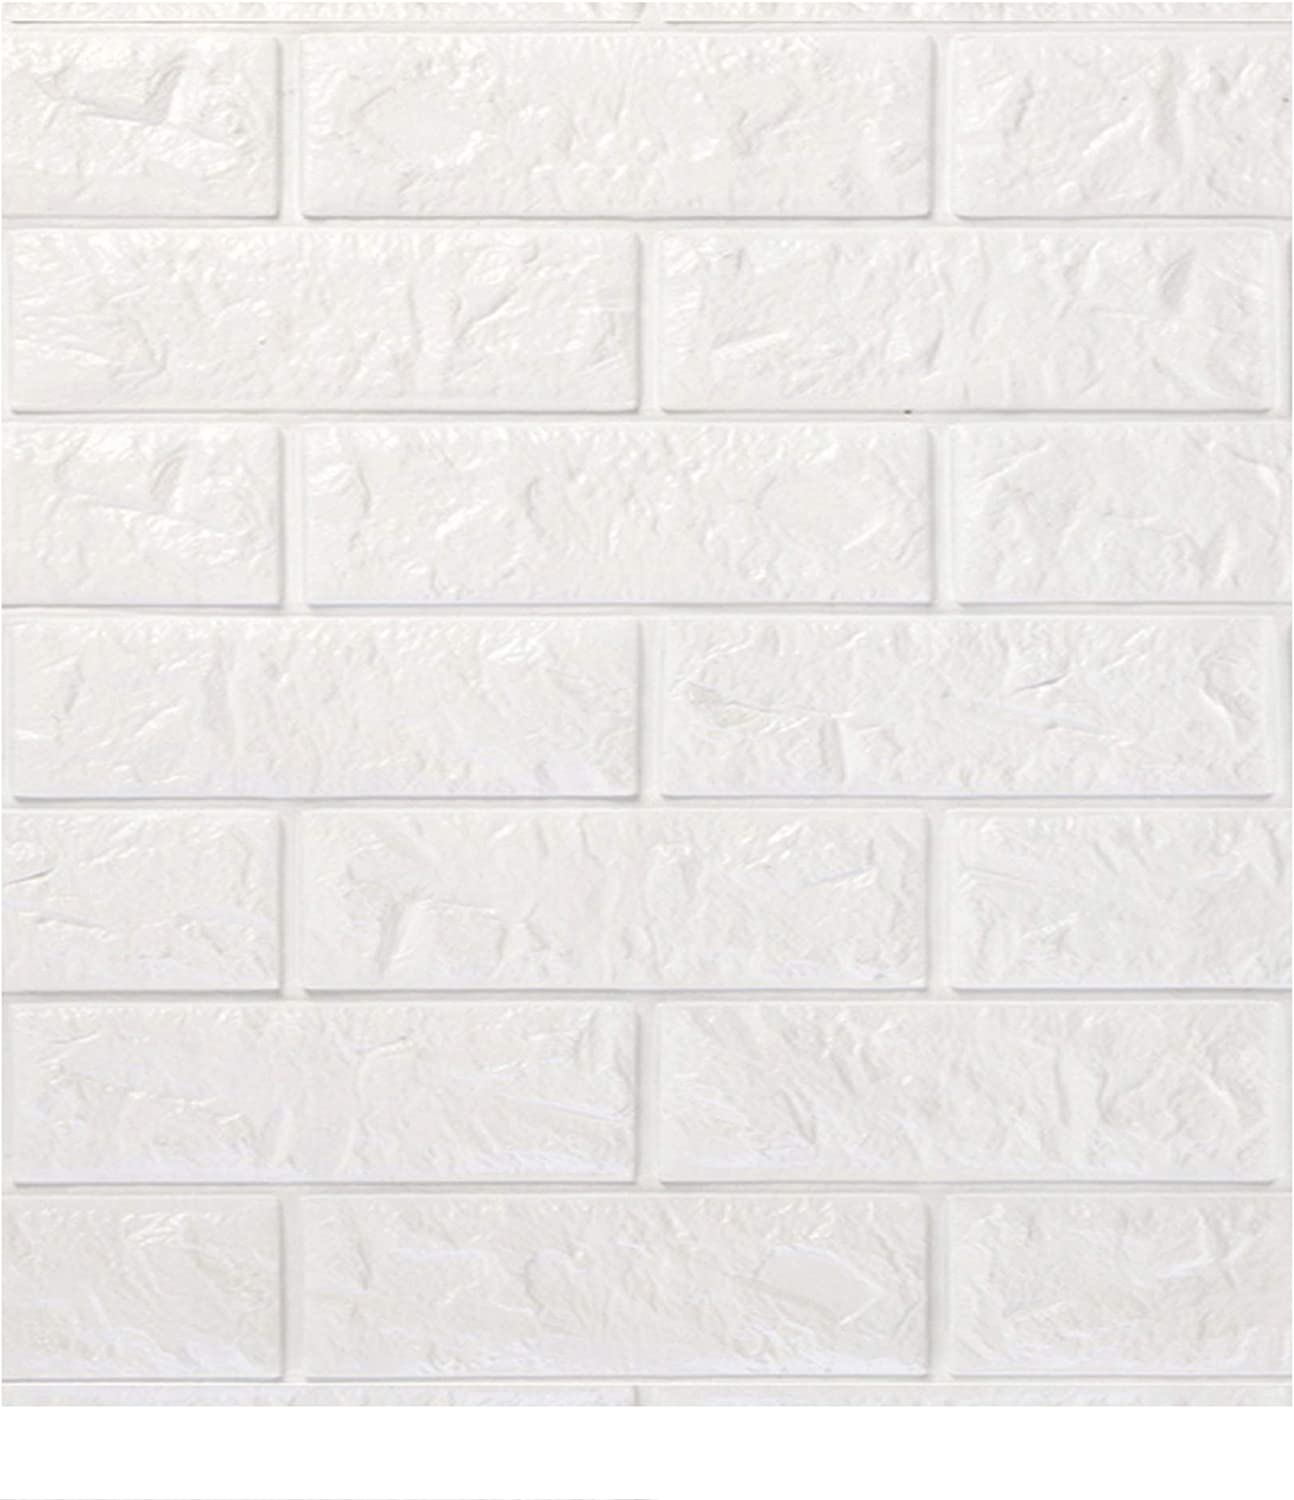 Brick Rock Brown DecoMe 23.6x23.6x0.4 inch Faux PE Foam Real Ricks Effect Textured 3D Wall Panels Sticker Self Adhesive Peel and Stick Panels for Home Decoration Pack of 10 Pieces